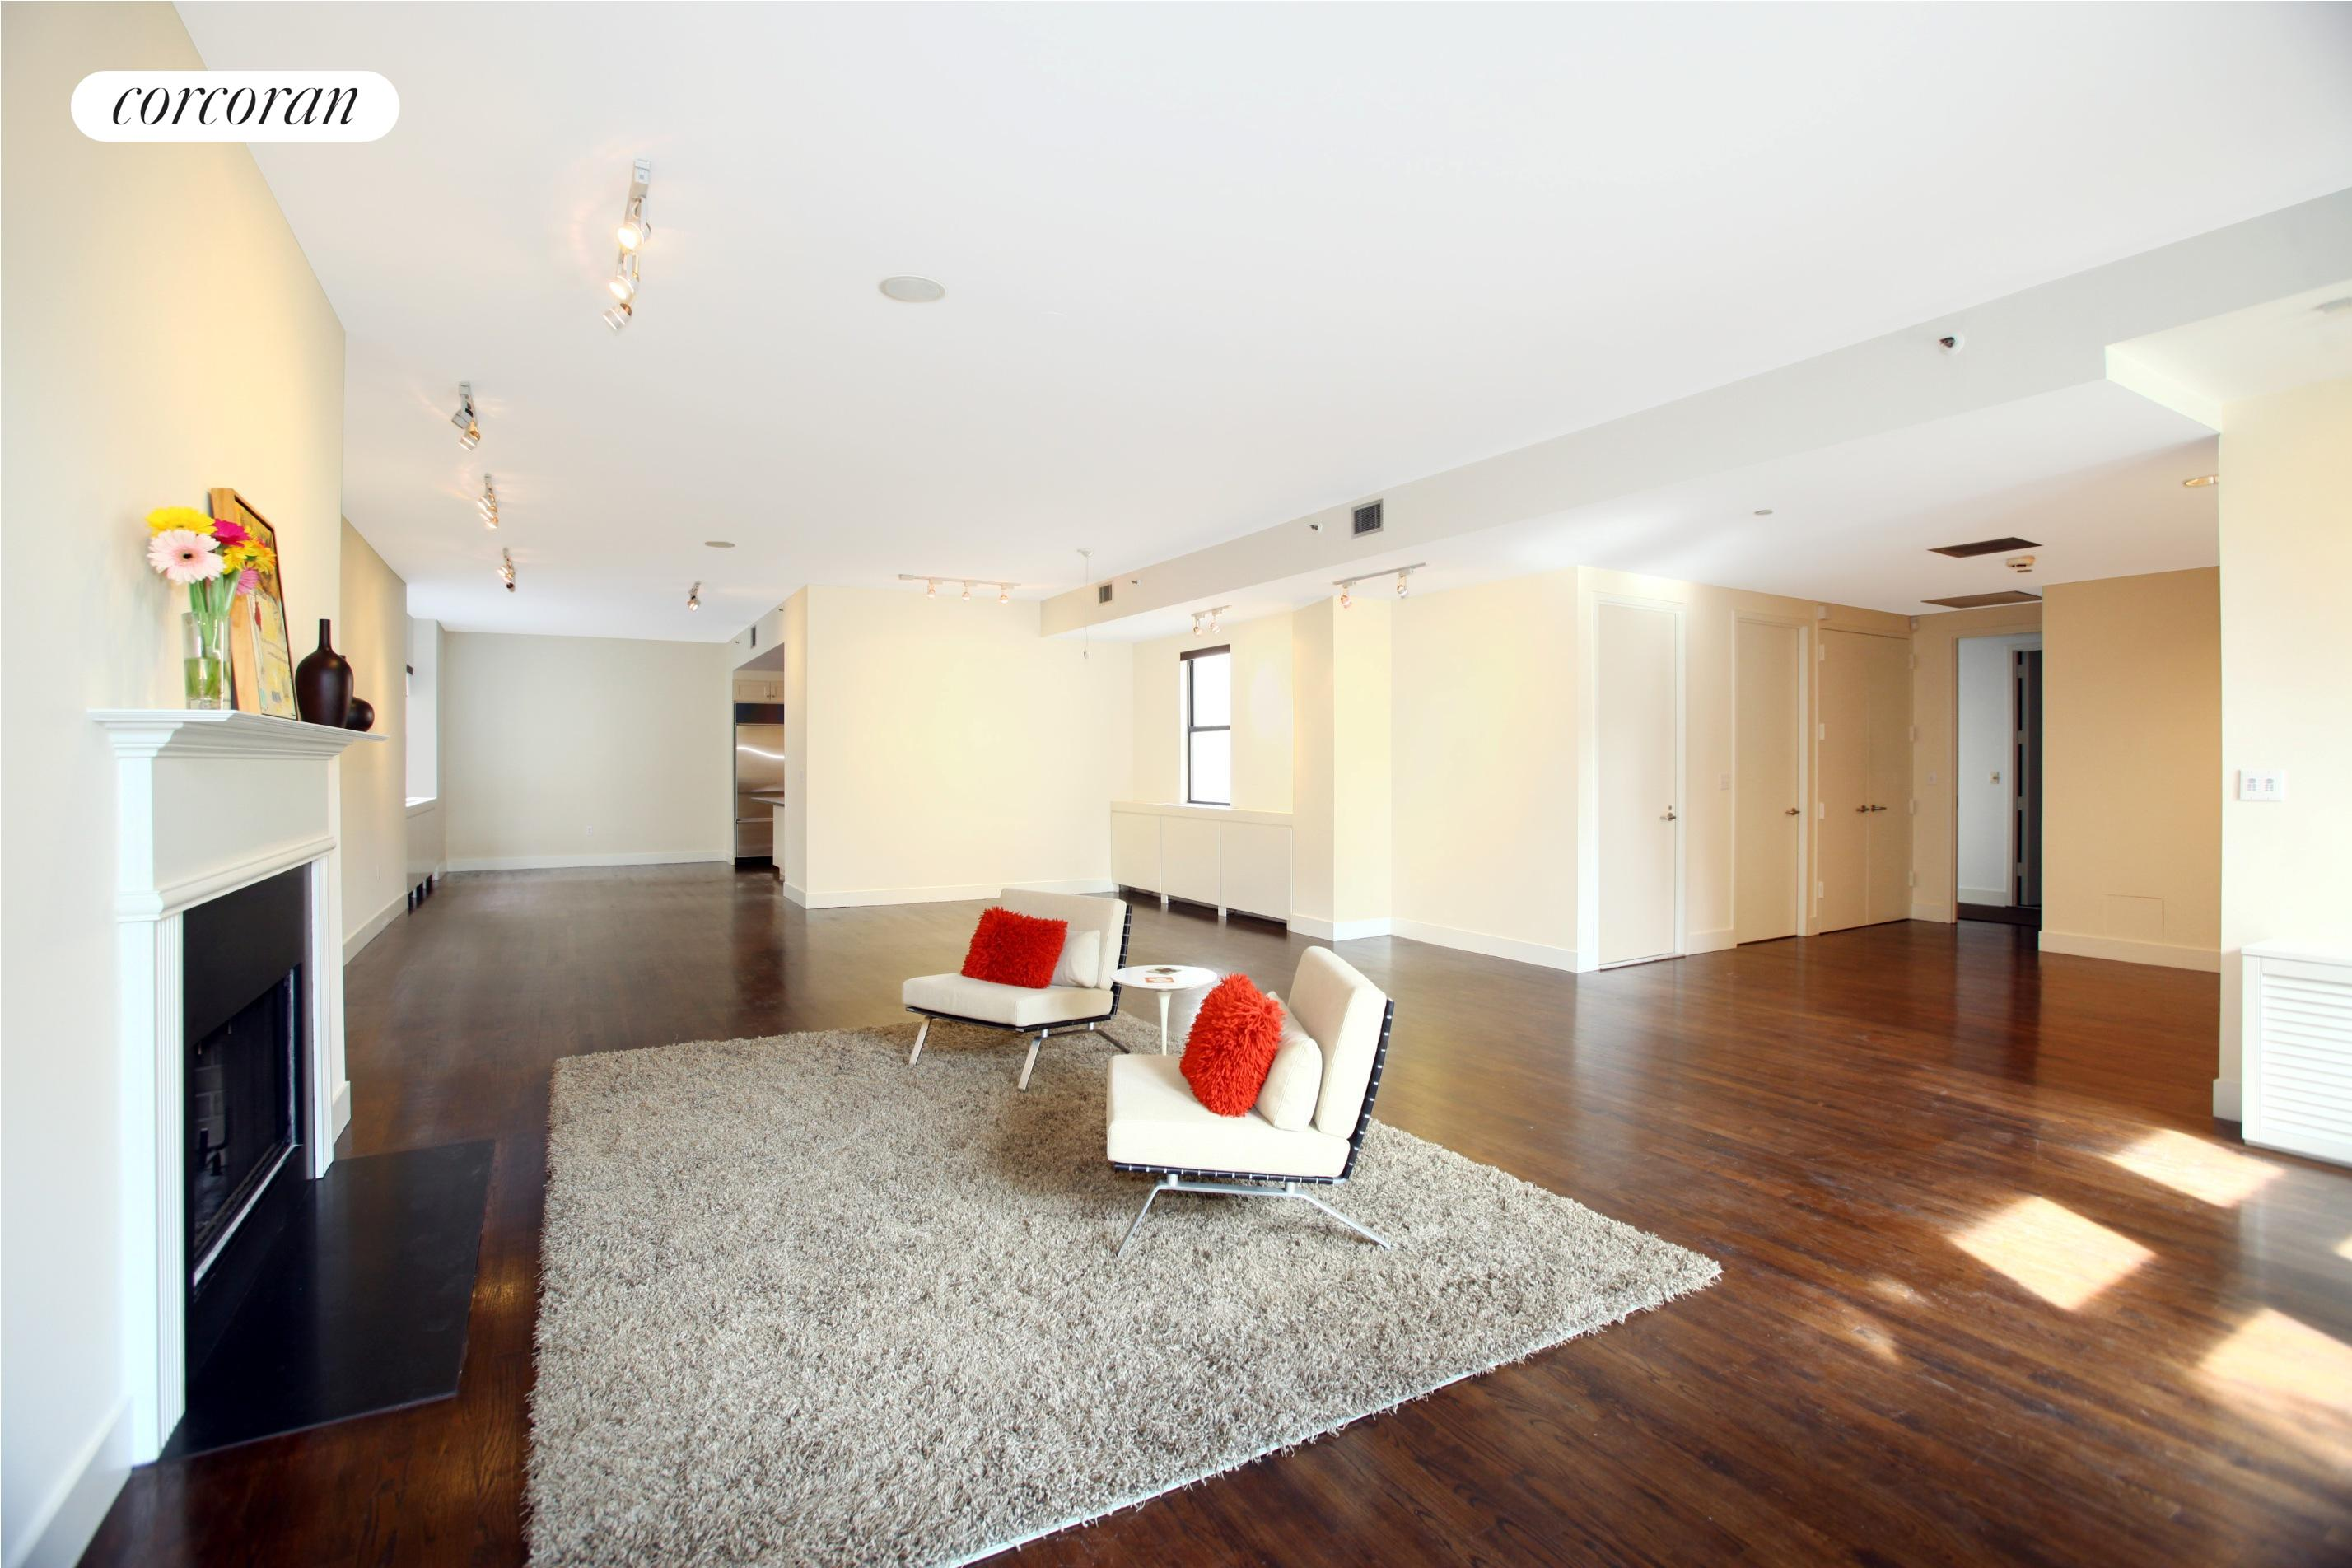 Corcoran 31 north moore apt phe tribeca real estate for Tribeca property for sale